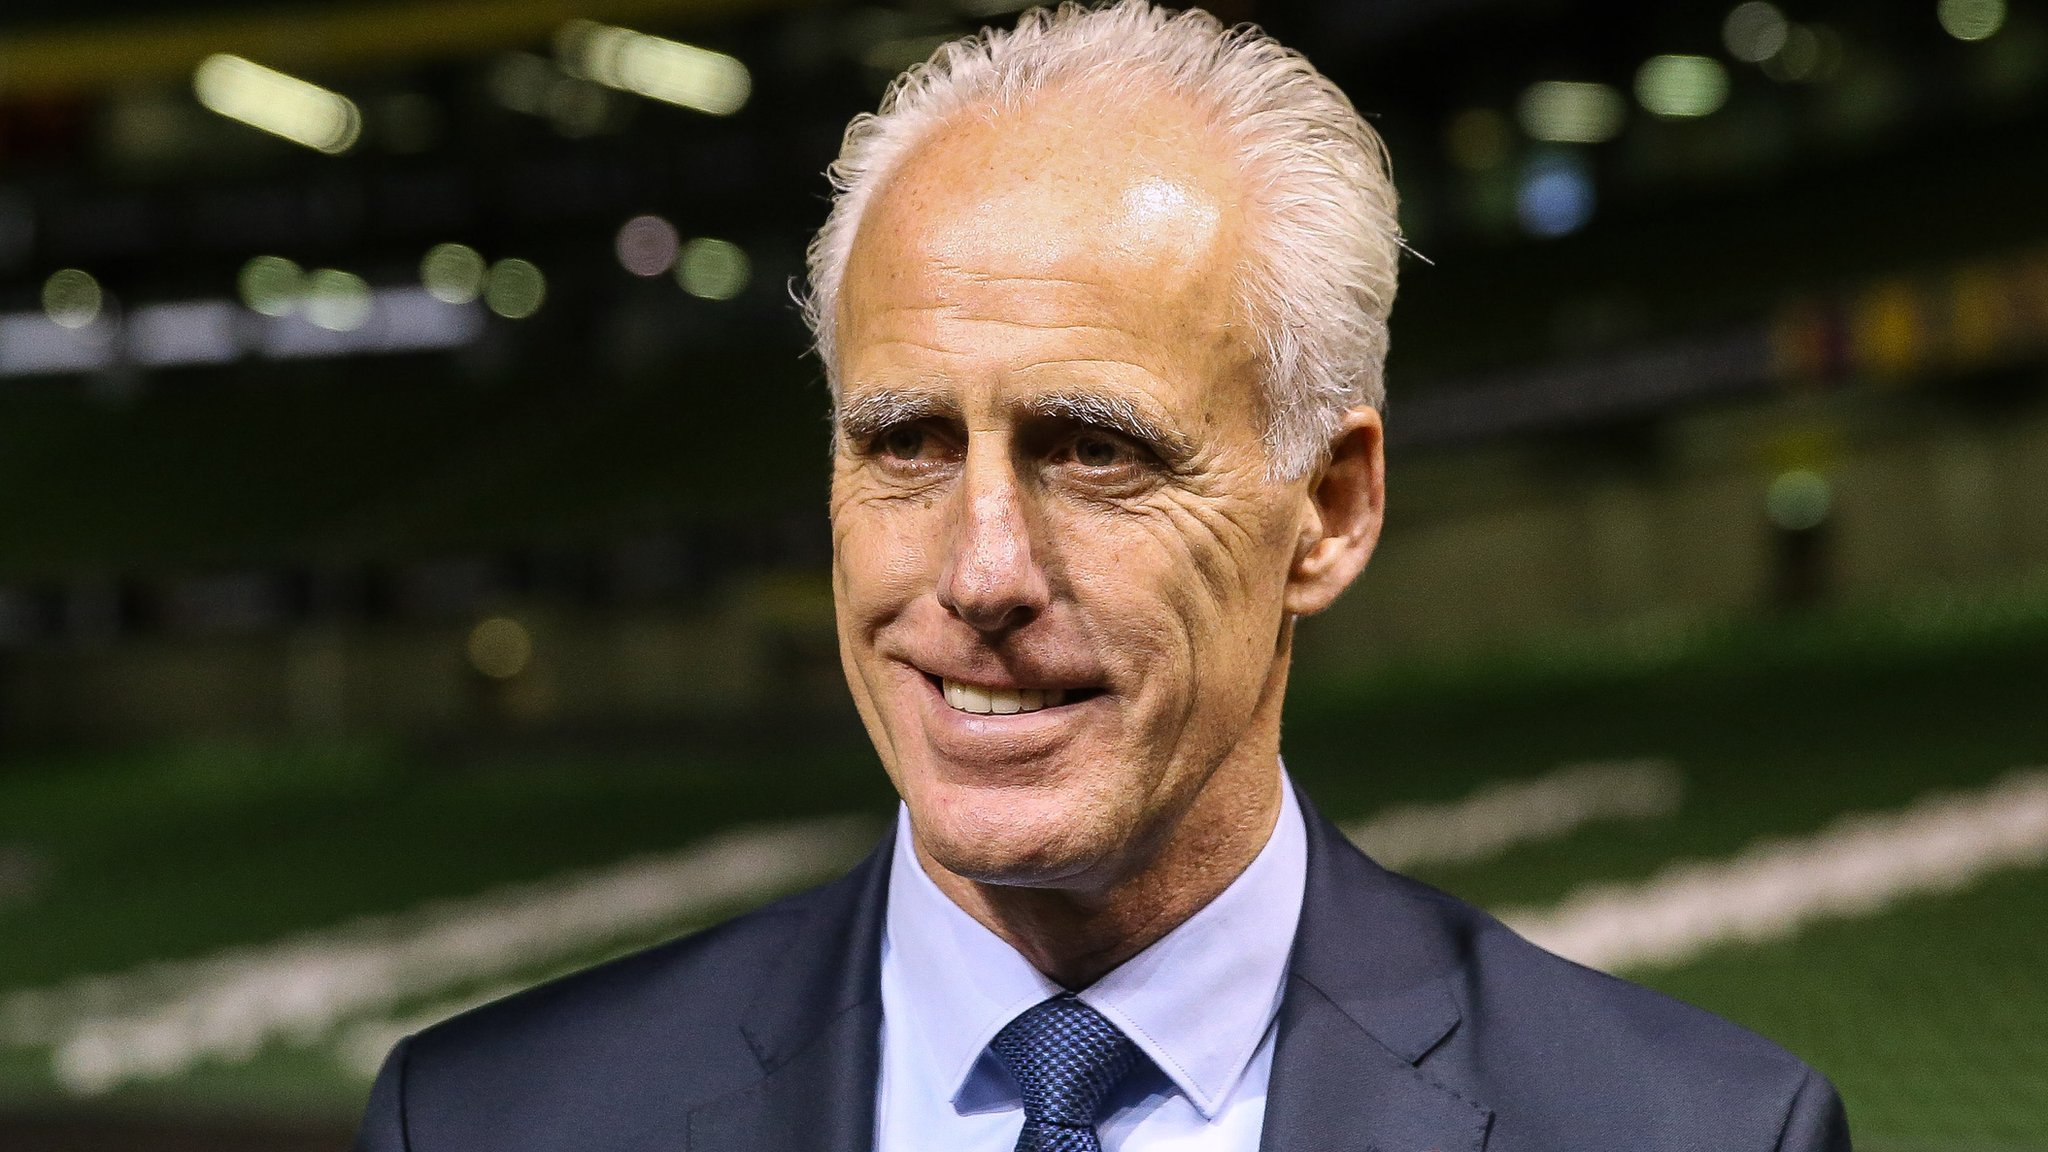 Euro 2020 qualifiers: Mick McCarthy's second Republic stint begins in Gibraltar